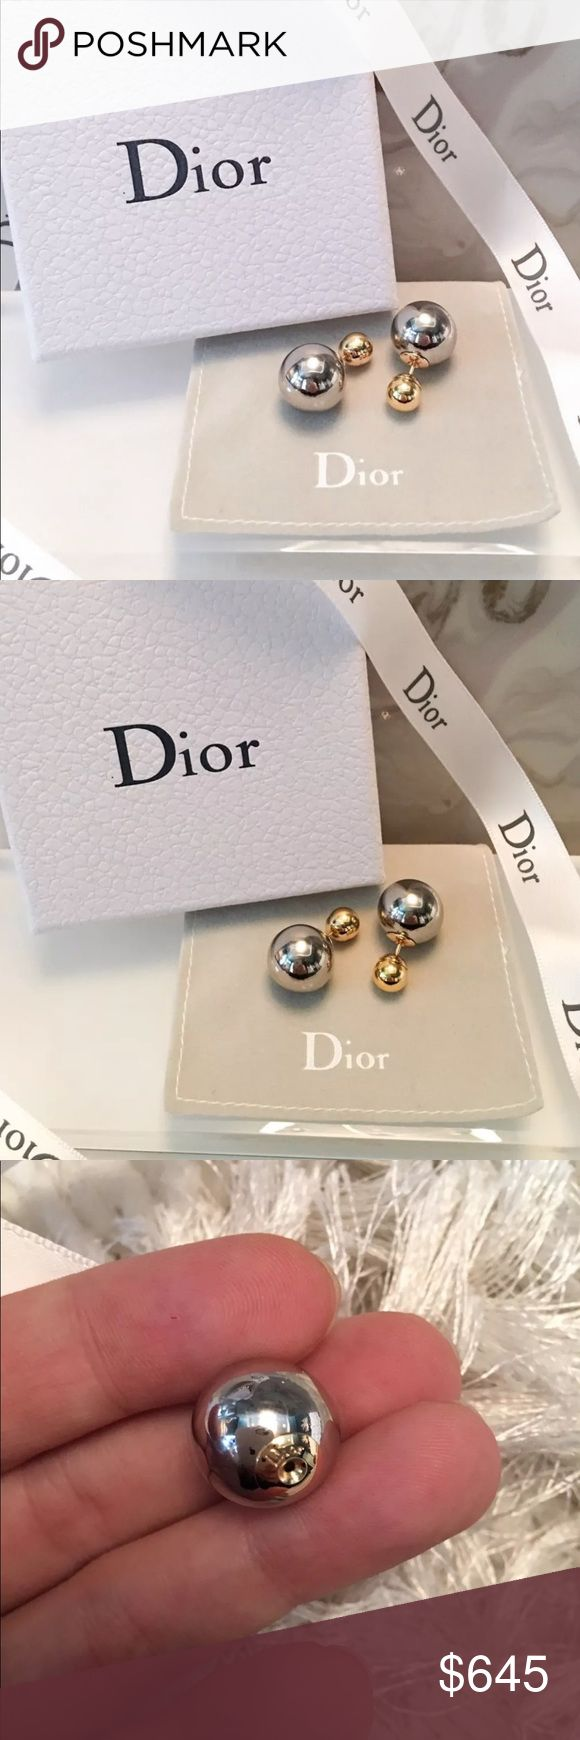 DIOR Tribal Two Tone Gold Silver Ball Earrings Authentic DIOR Mis En Dior Tribale Double Ball Tribal Earrings. These are so great for dressing up or every day. Light weight so they will not hold down your ears.  Gold and silver contrasting balls. Dior engraving inside. Celebrity Favorite!  Excellent condition!! Comes with box and duster, not the ribbon.  Excellent condition.  100% authentic guarantee (have already been authenticated by Authenticate First). Dior Jewelry Earrings